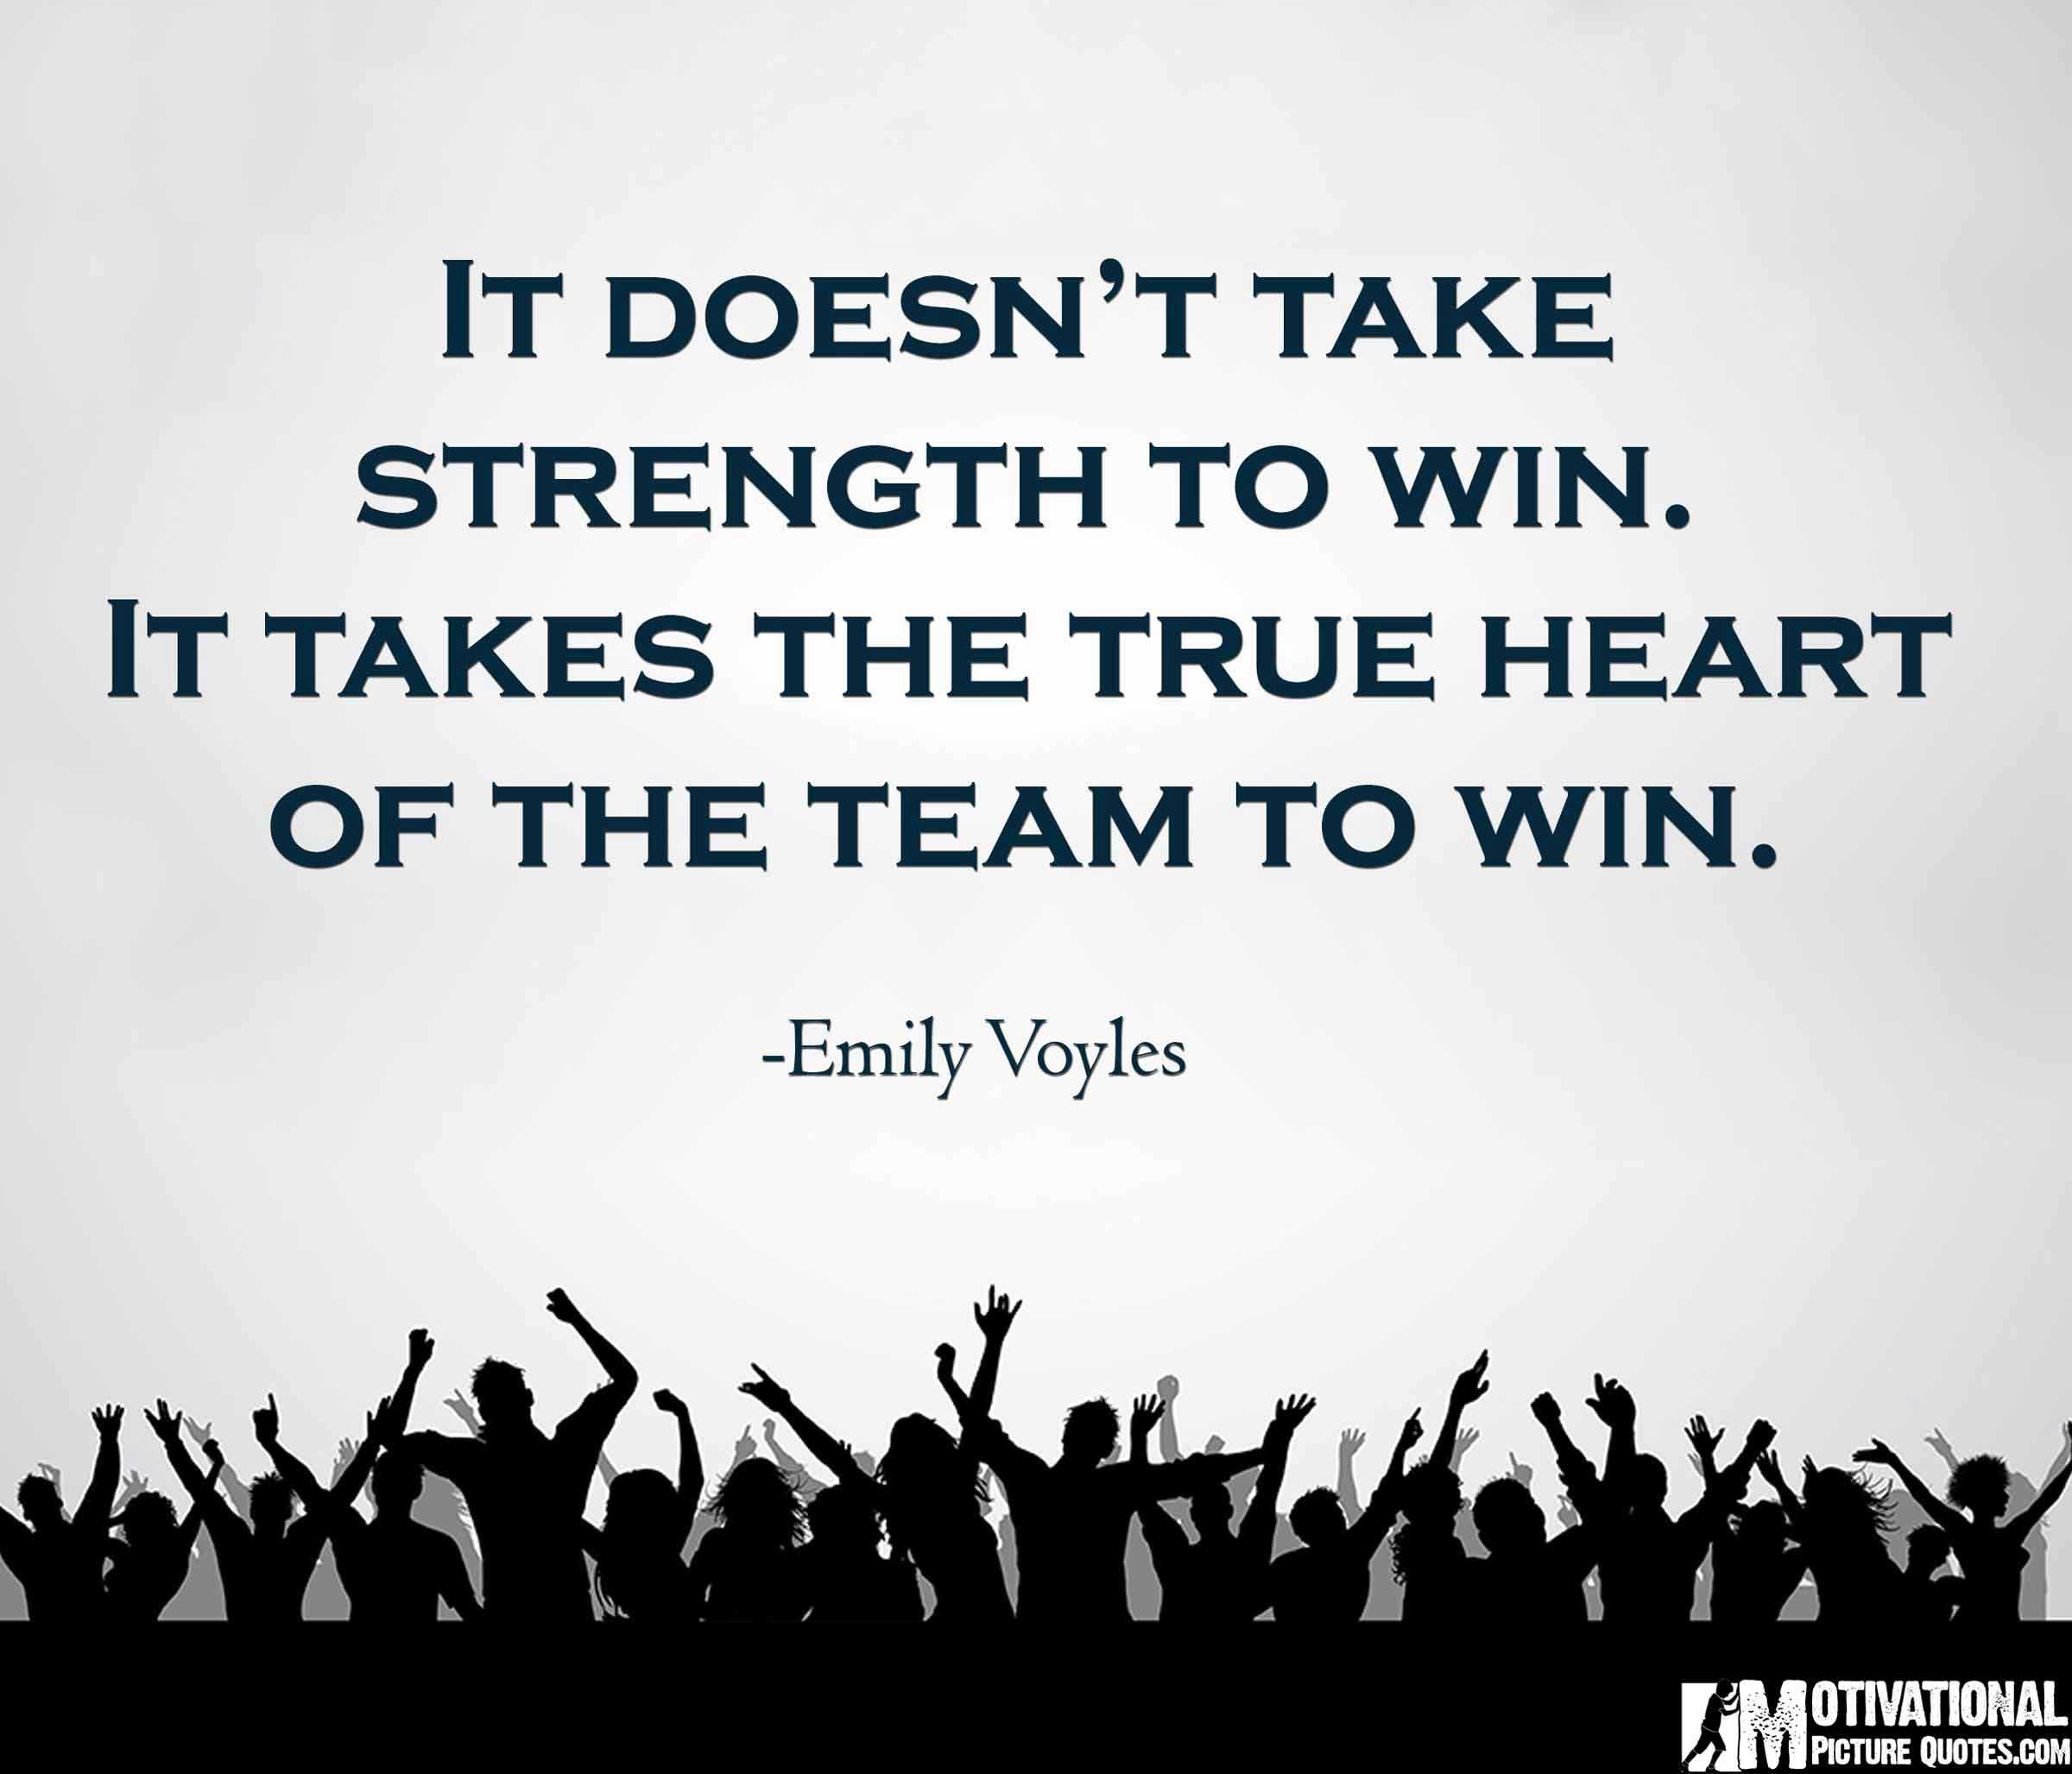 Motivational Quotes For Sports Teams Last Game: 20+ Inspirational Team Quotes Images